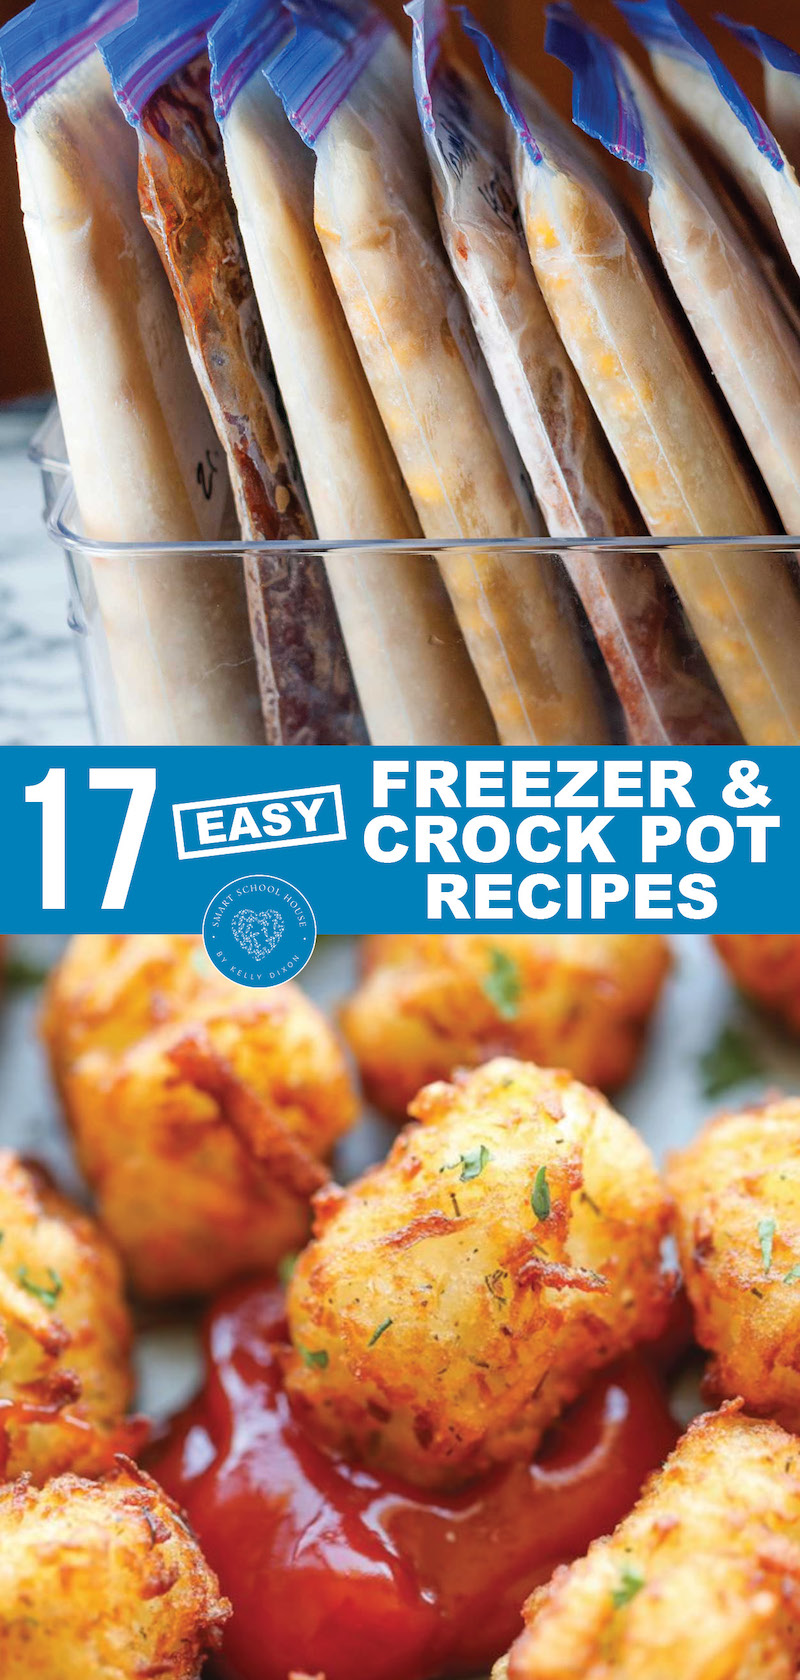 Easy Freezer and Crock Pot Recipes